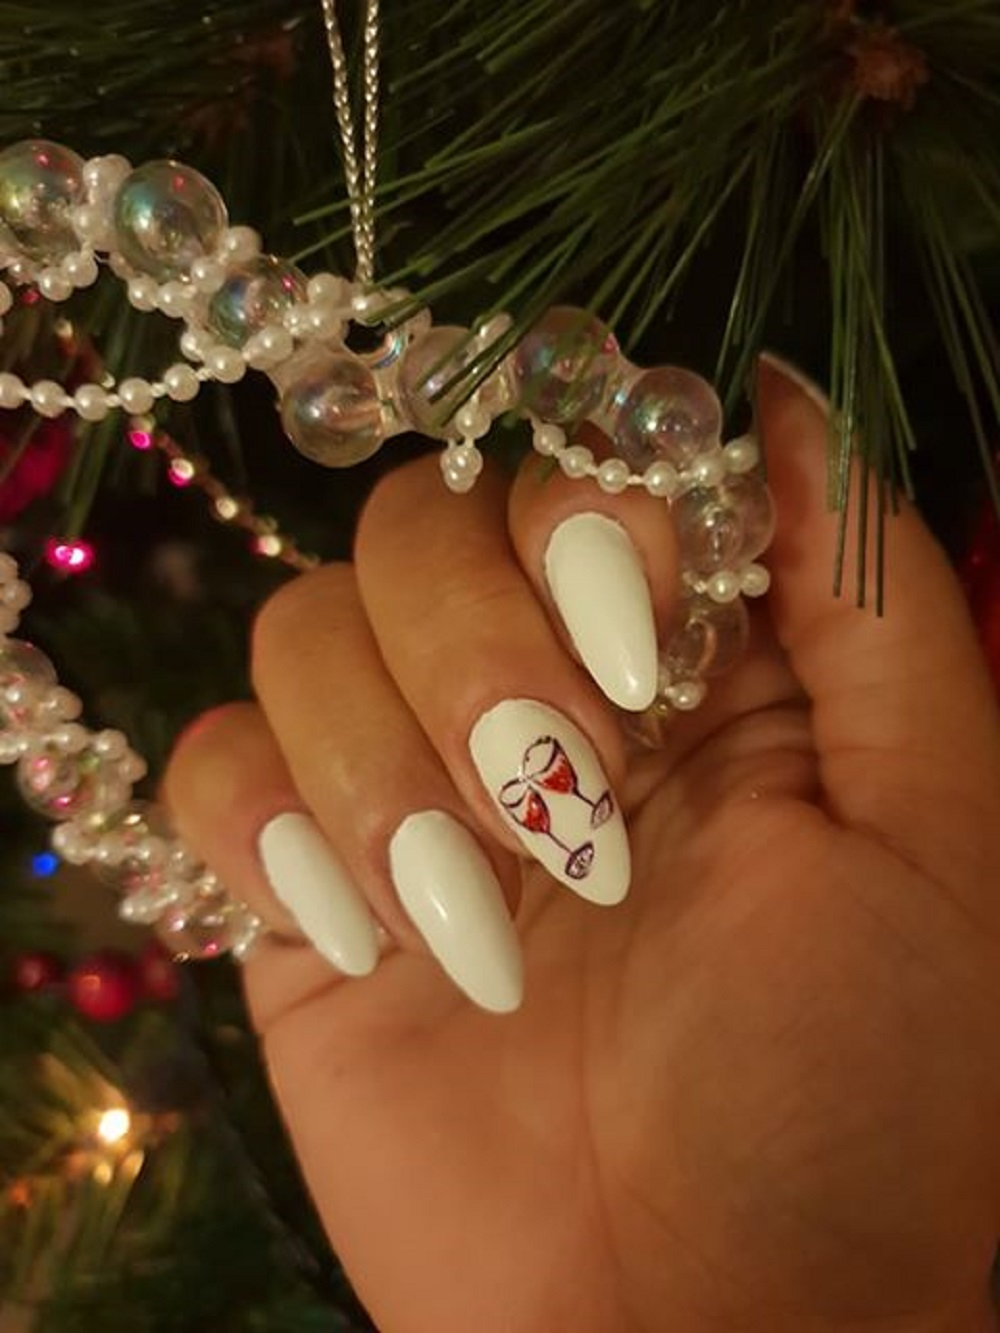 Excentric Nails